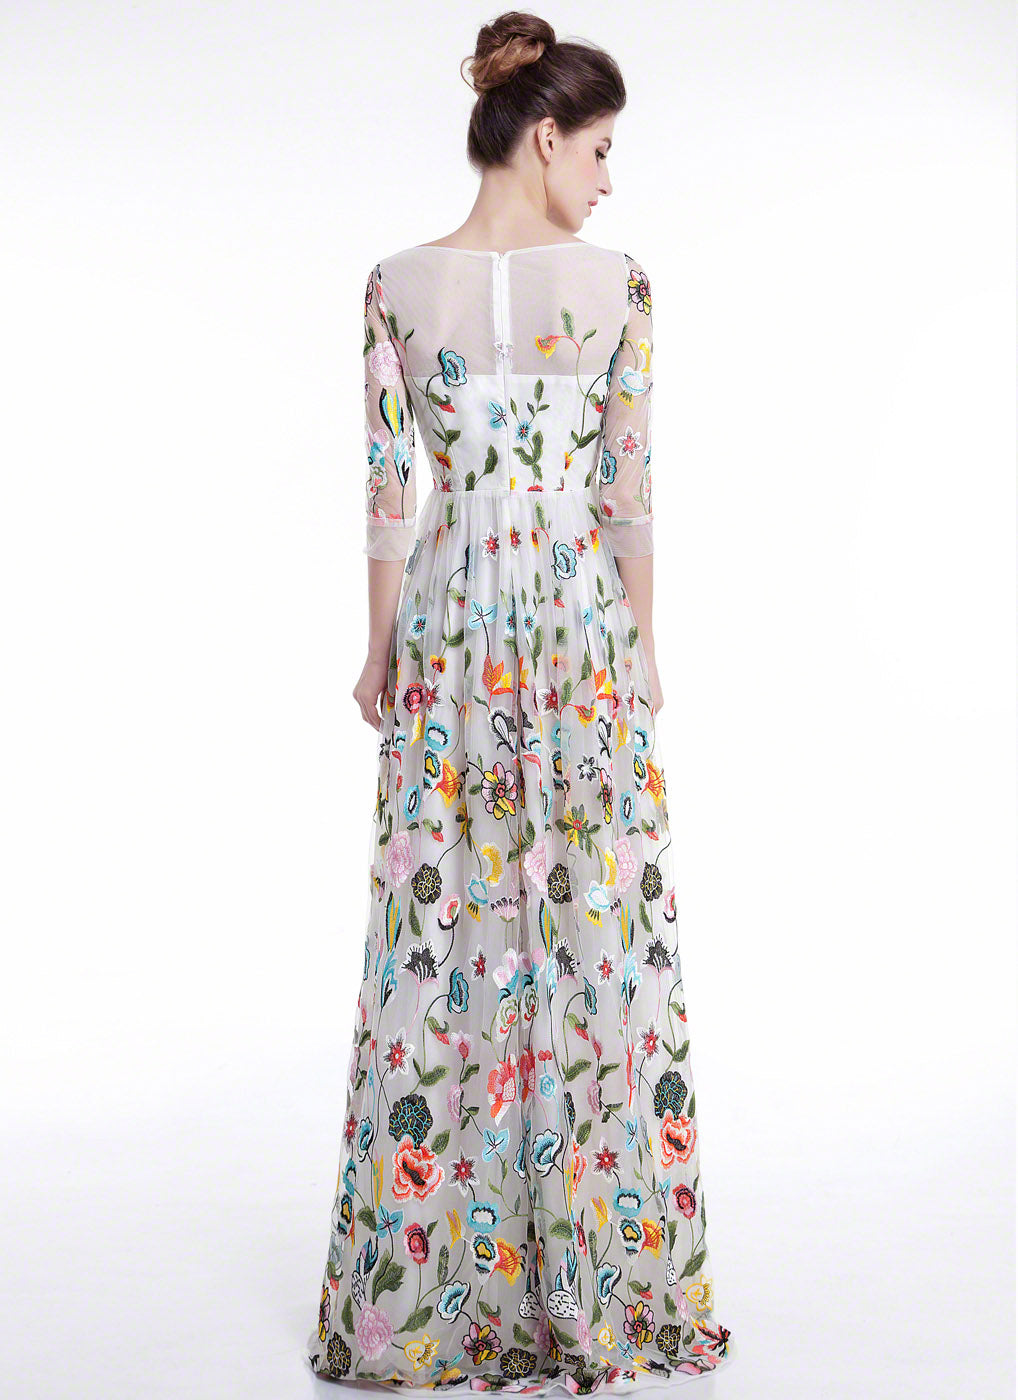 White Tulle Floor Length Evening Dress With Floral Accents Colorful